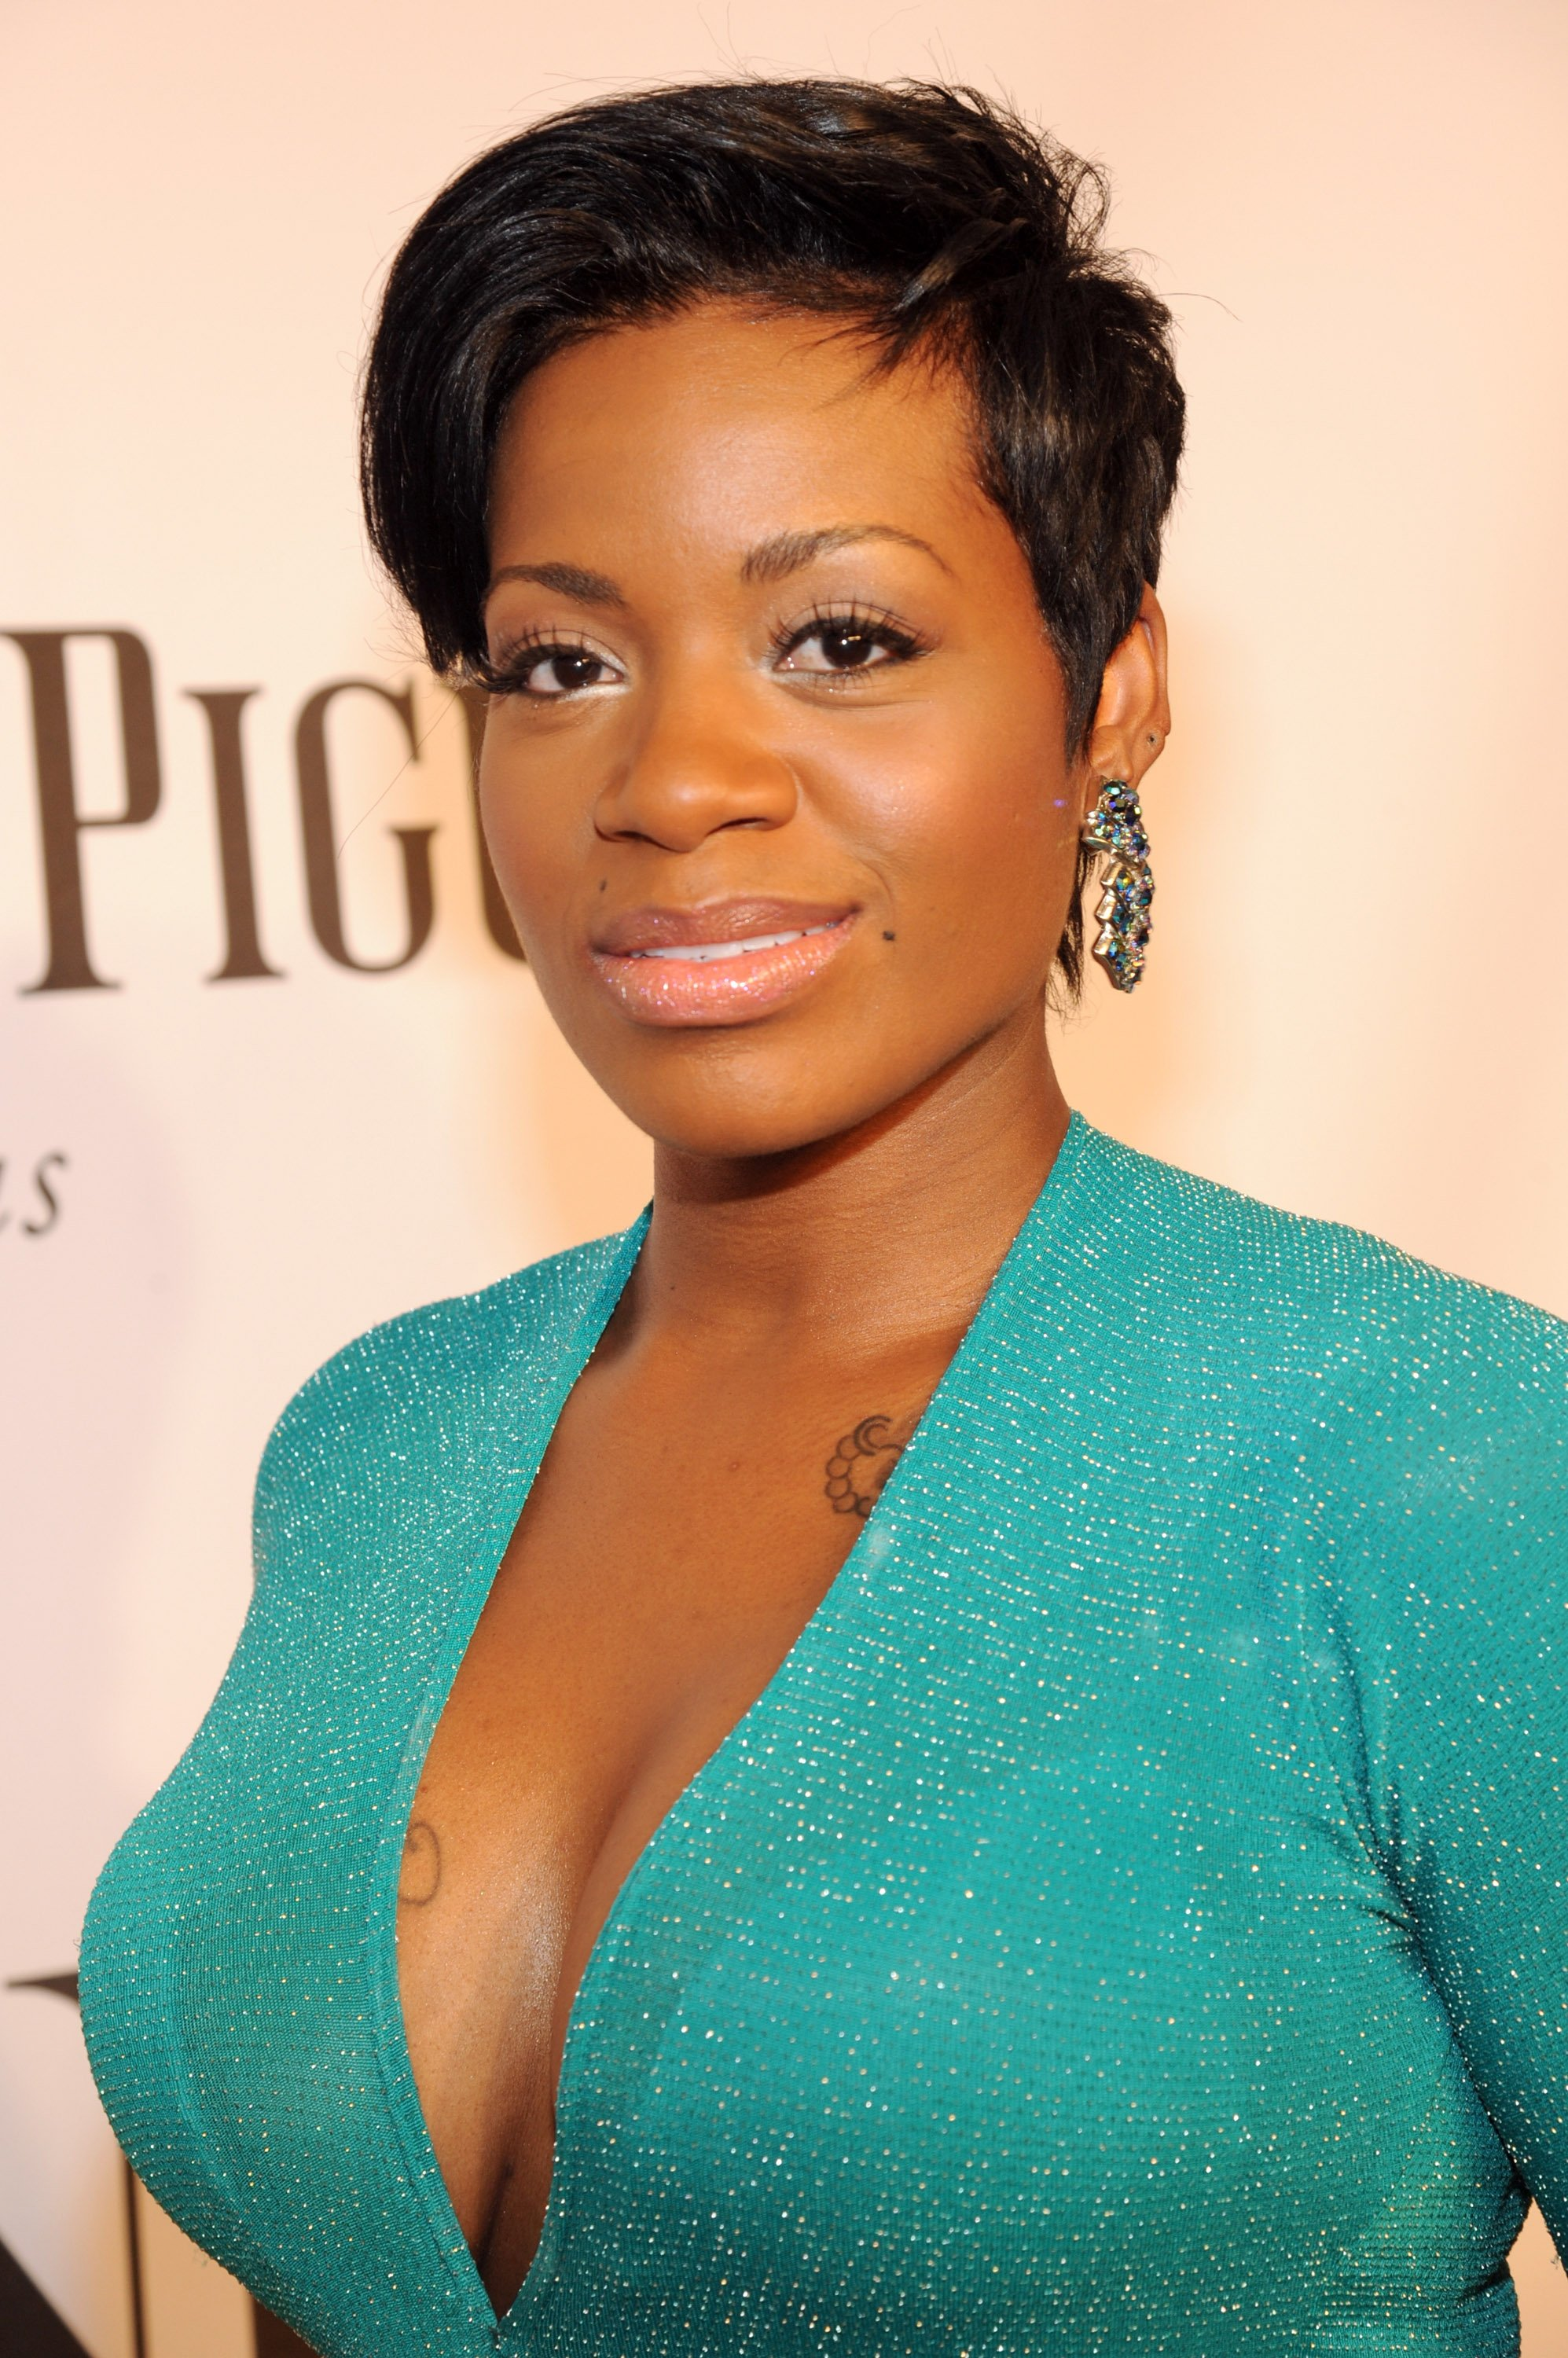 Fantasia at Radio City Music Hall for the Annual Tony Awards on June 8, 2014 in New York City.| Source: Getty Images